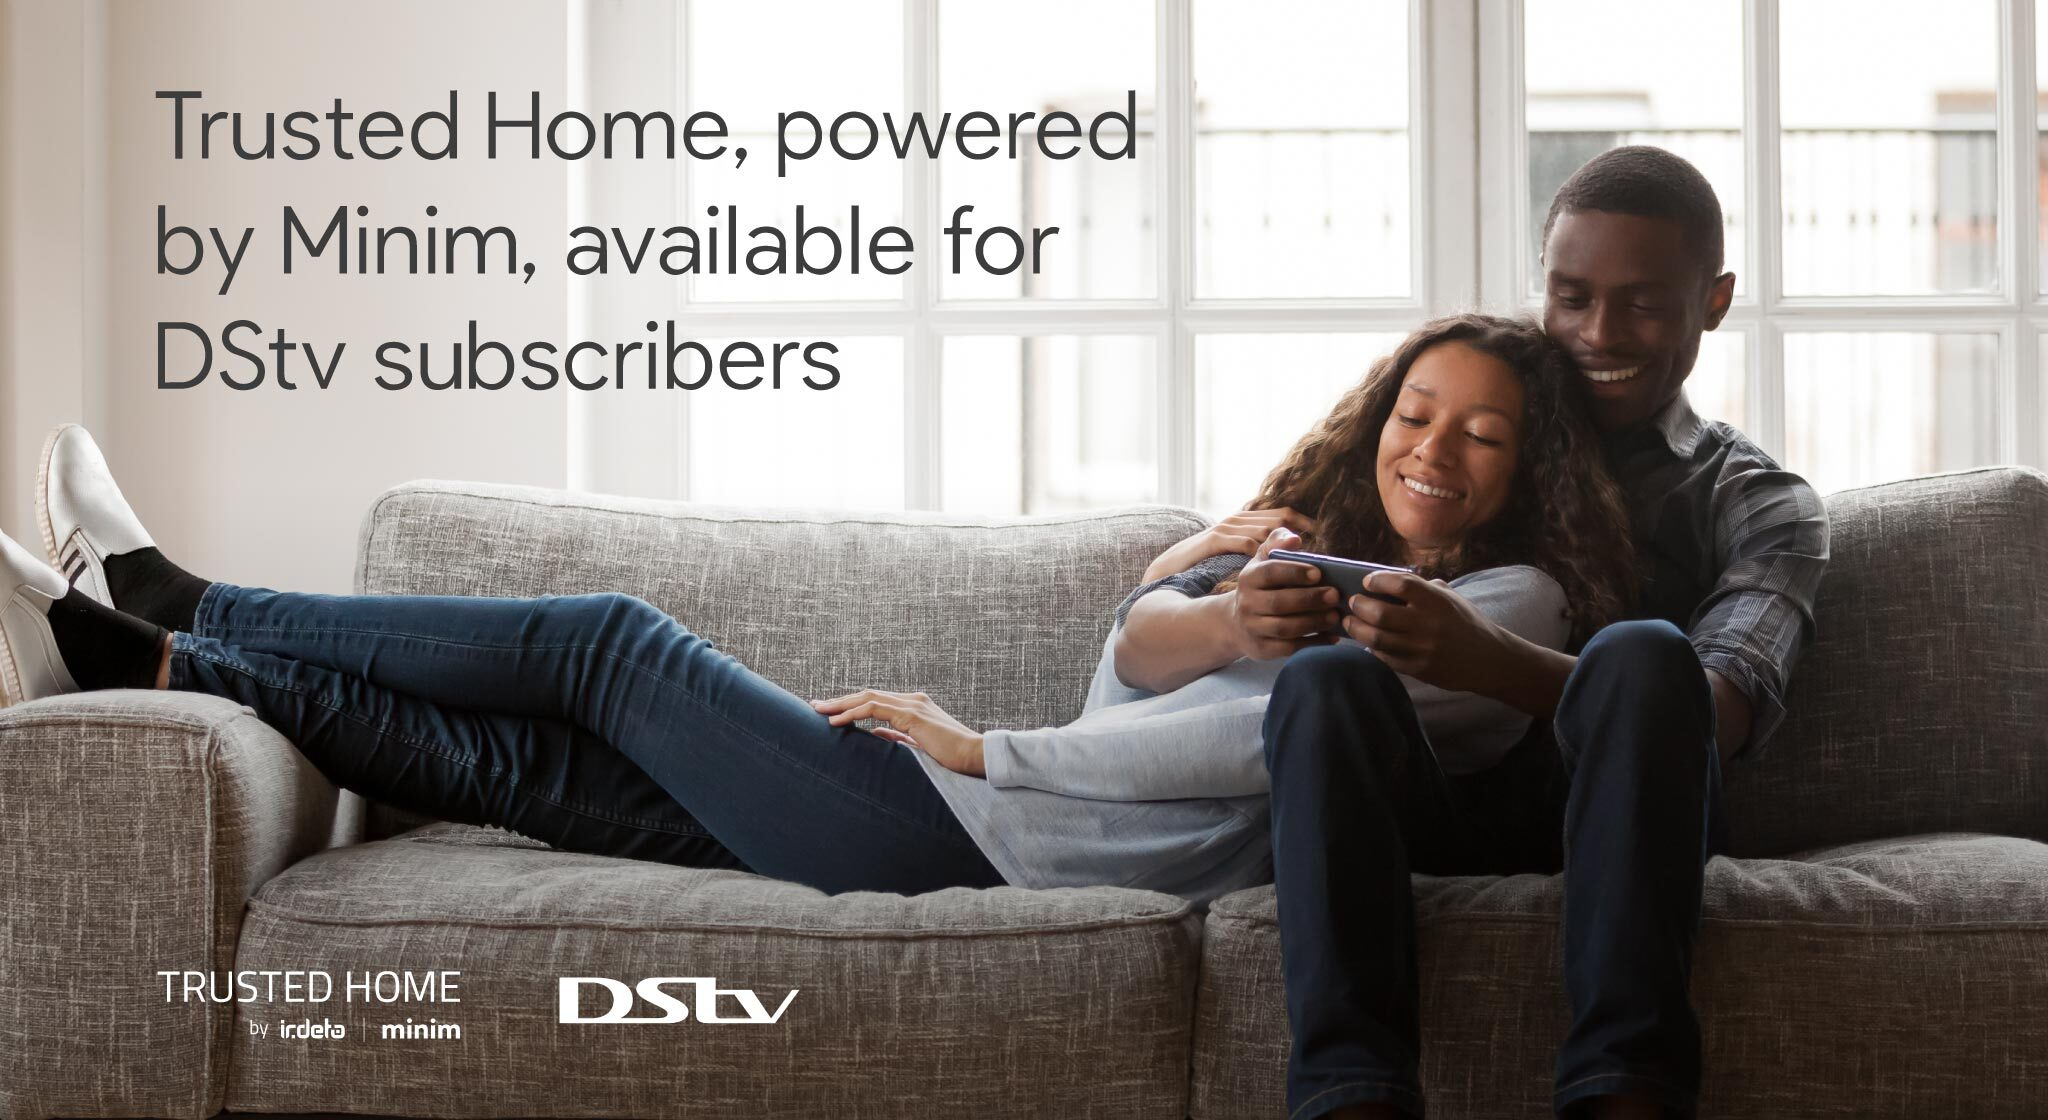 """<img src=""""minim-trusted-home-wifi-management-app.jpg"""" alt=""""couple-on-couch-home-wifi-in-africa"""" />"""